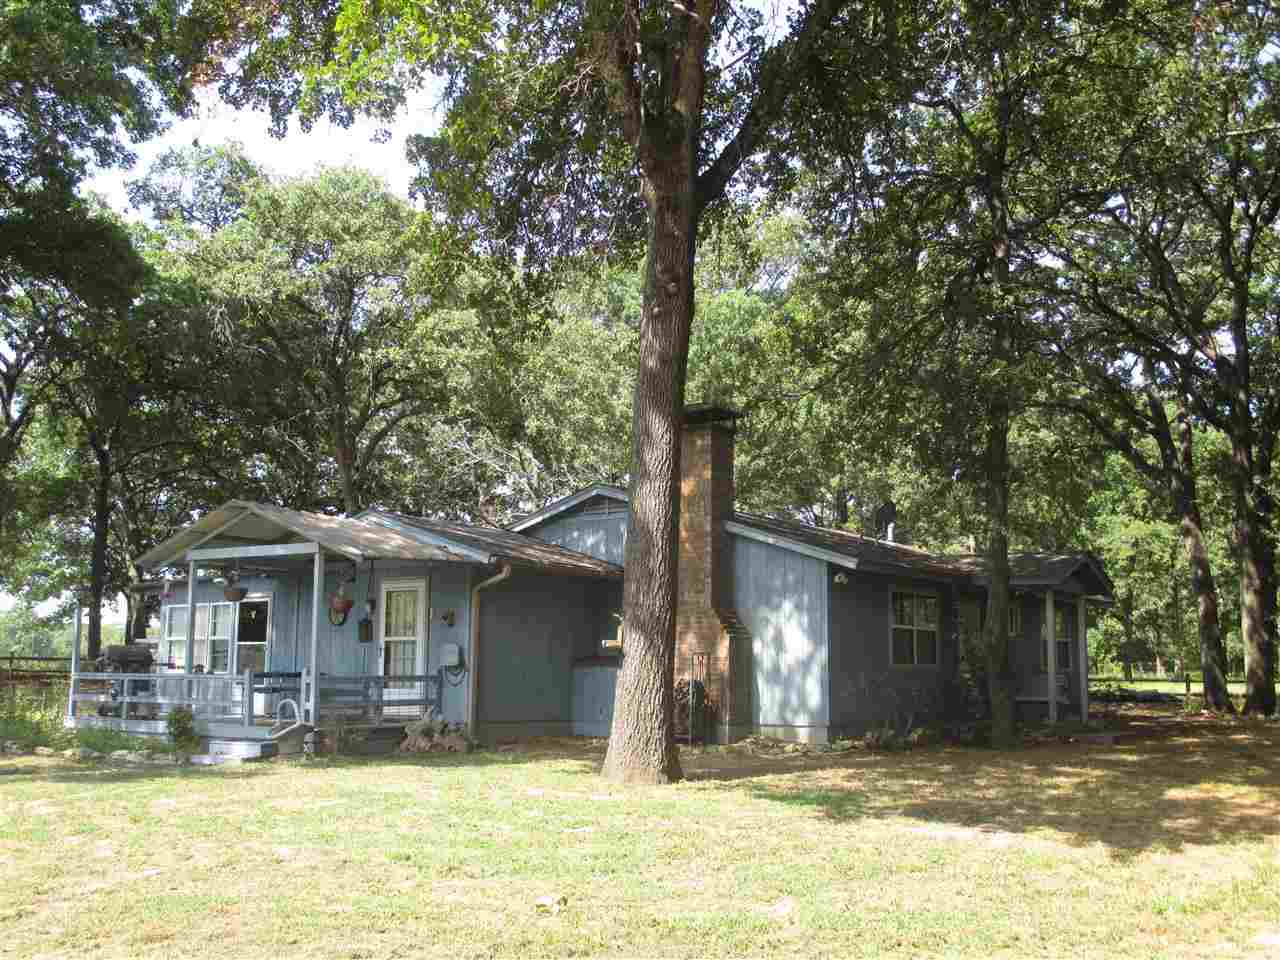 232 Tolley Ln, Cartwright, OK 74731